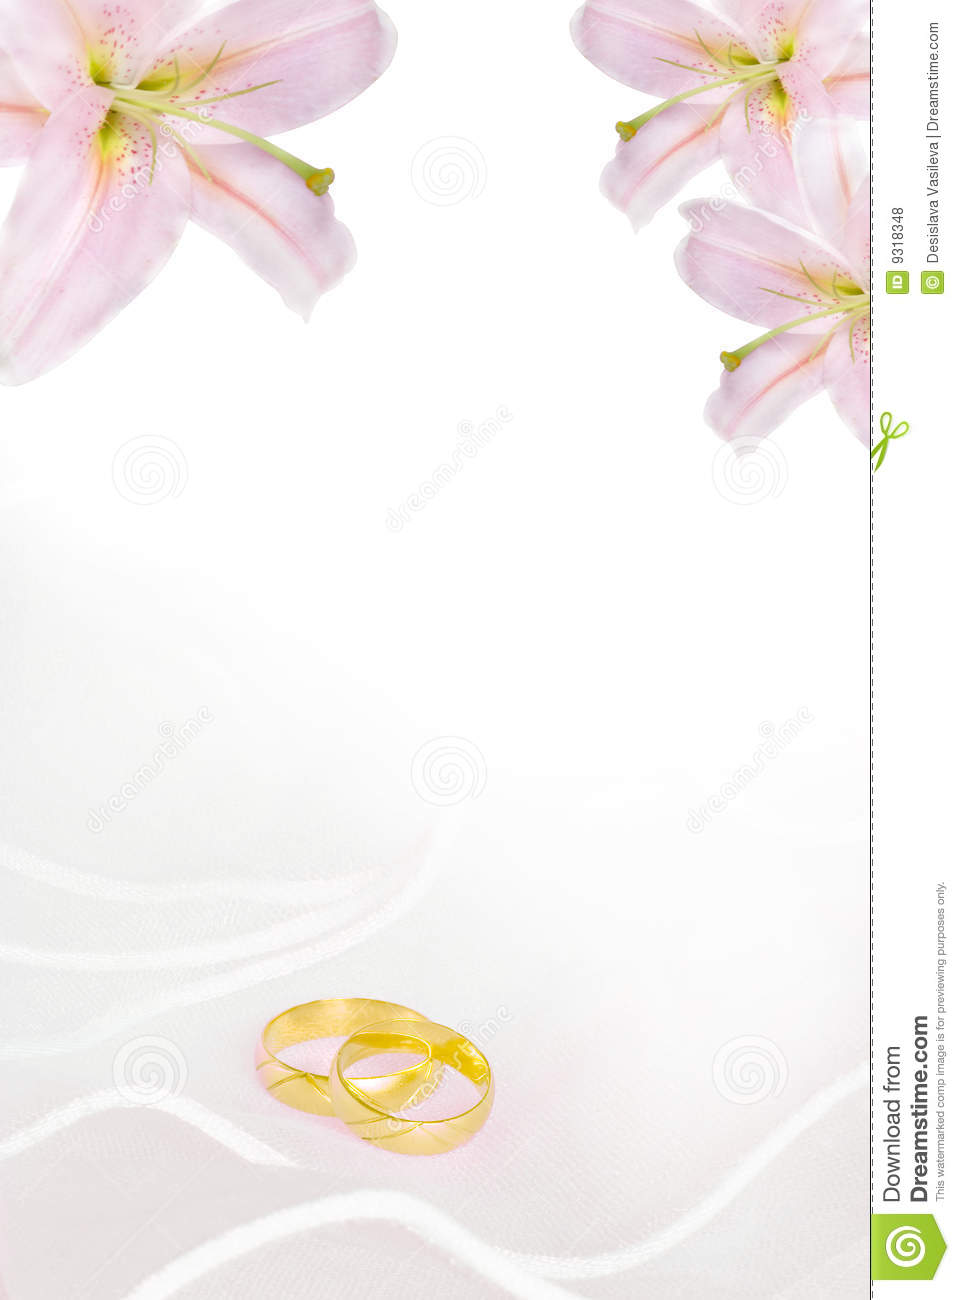 blank wedding invitations templates gold weddingdresses online com blank wedding invitations templates gold